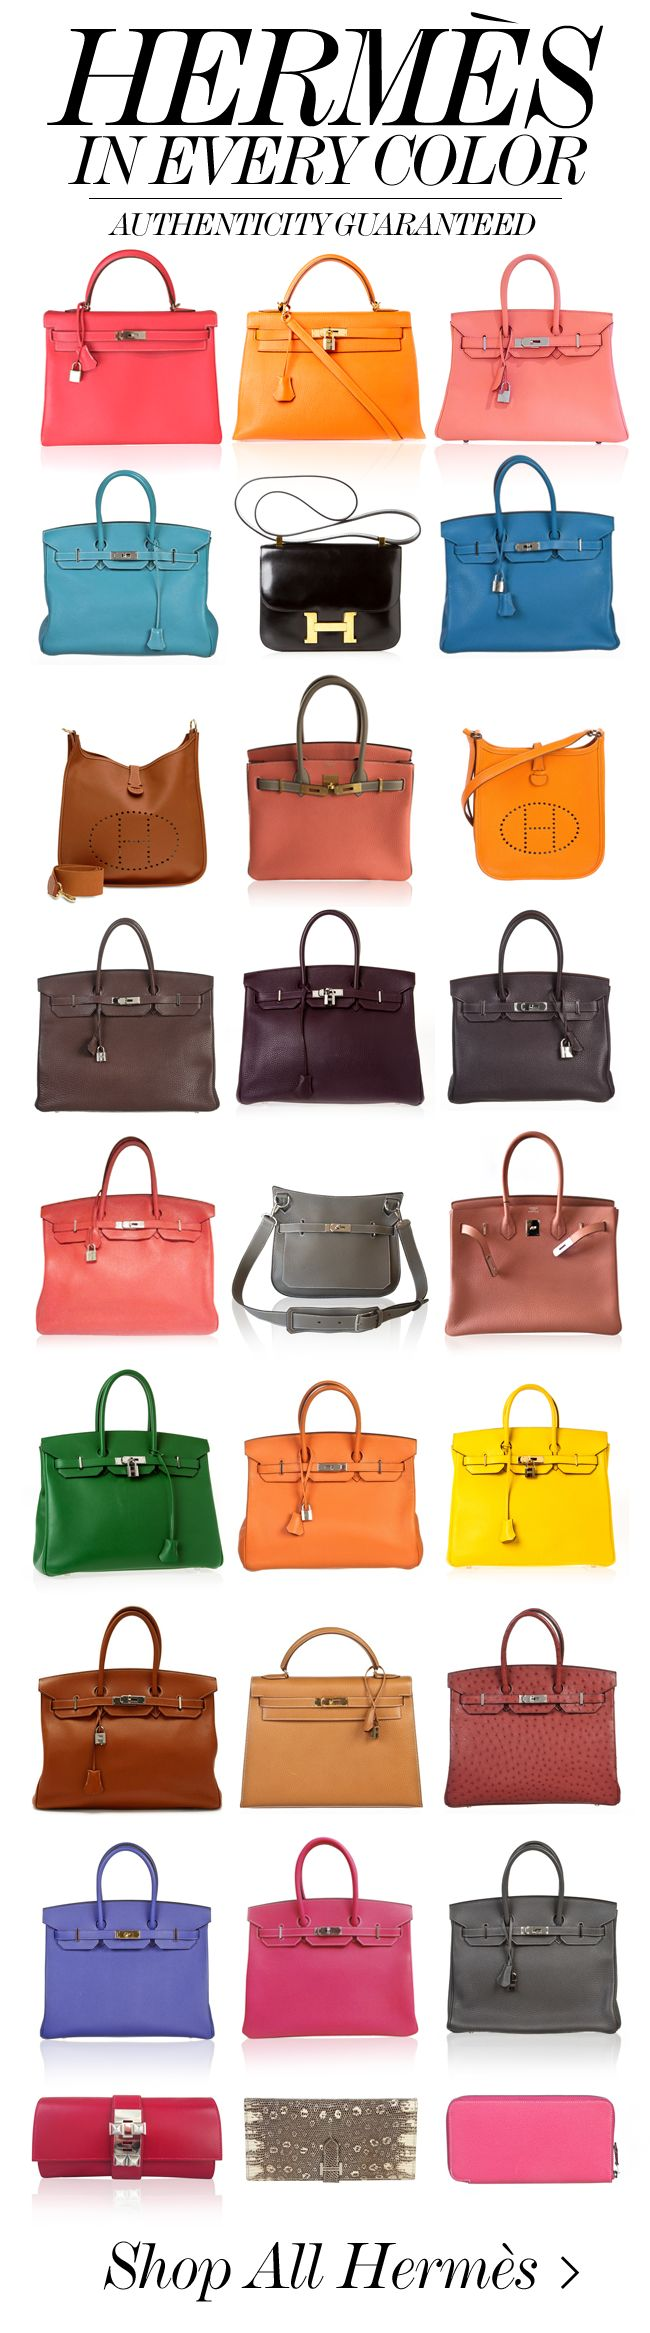 A Birkin & Kelly in every color!